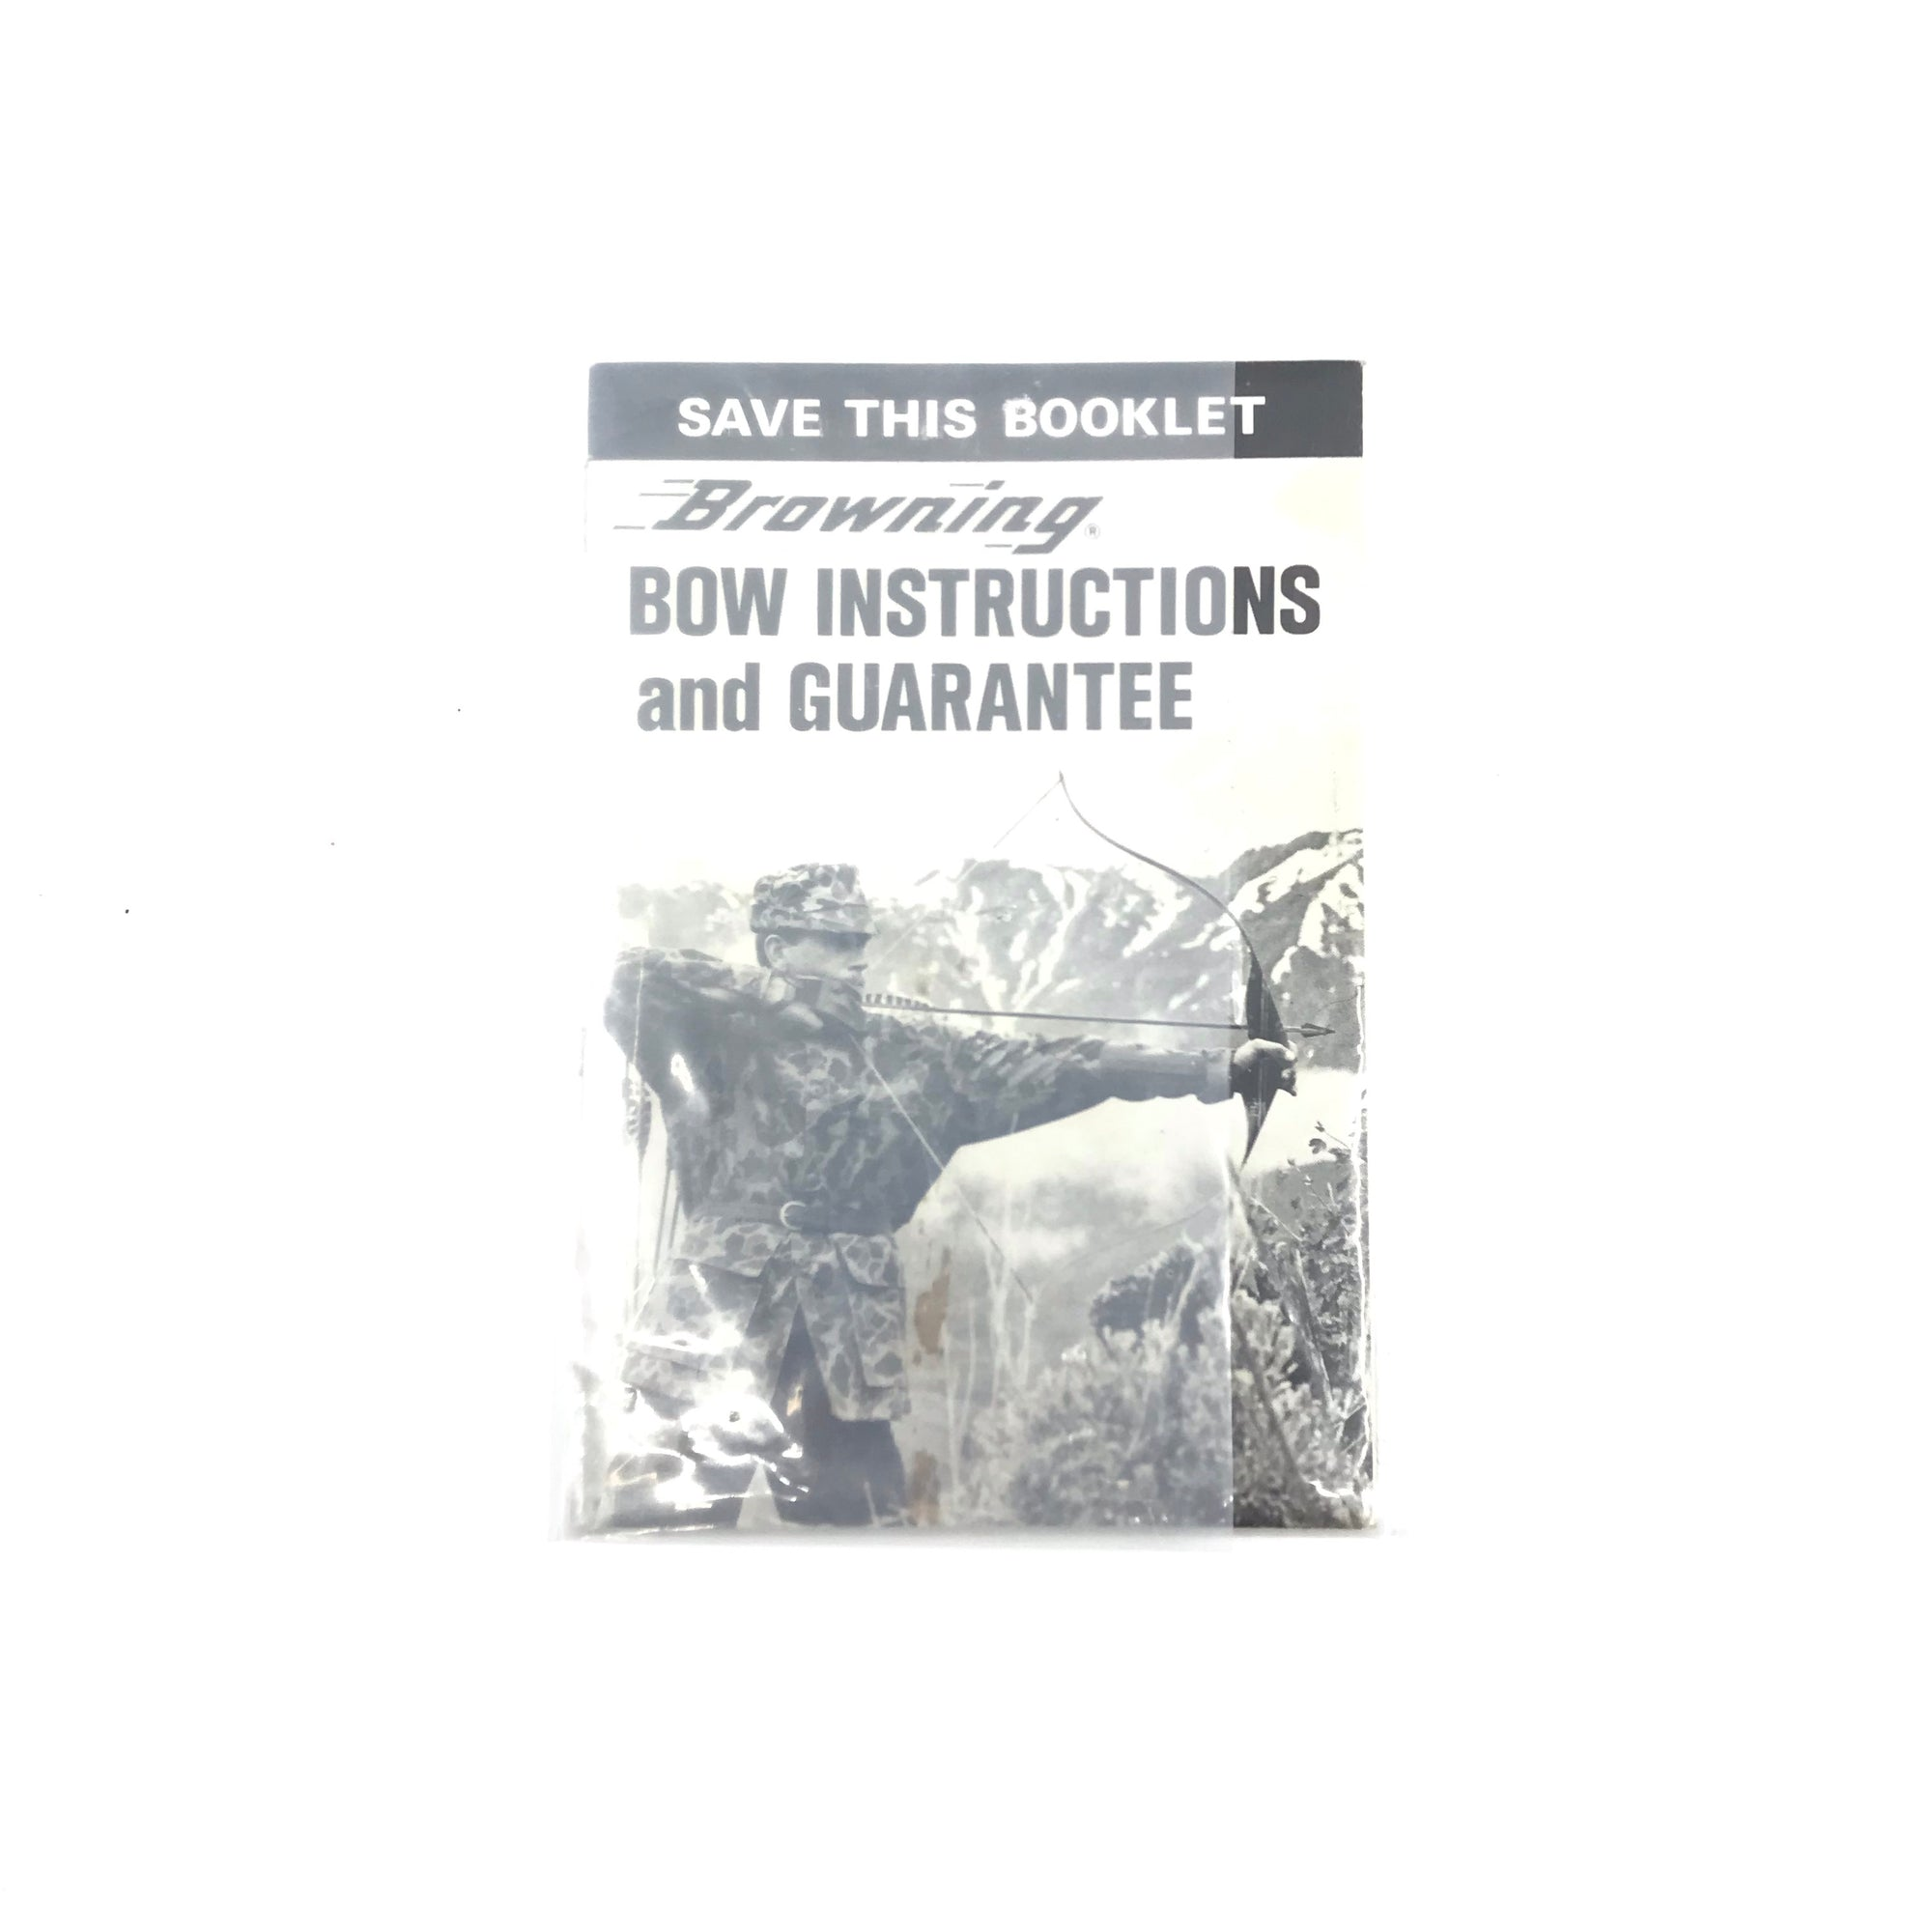 Browning Bow Instructions